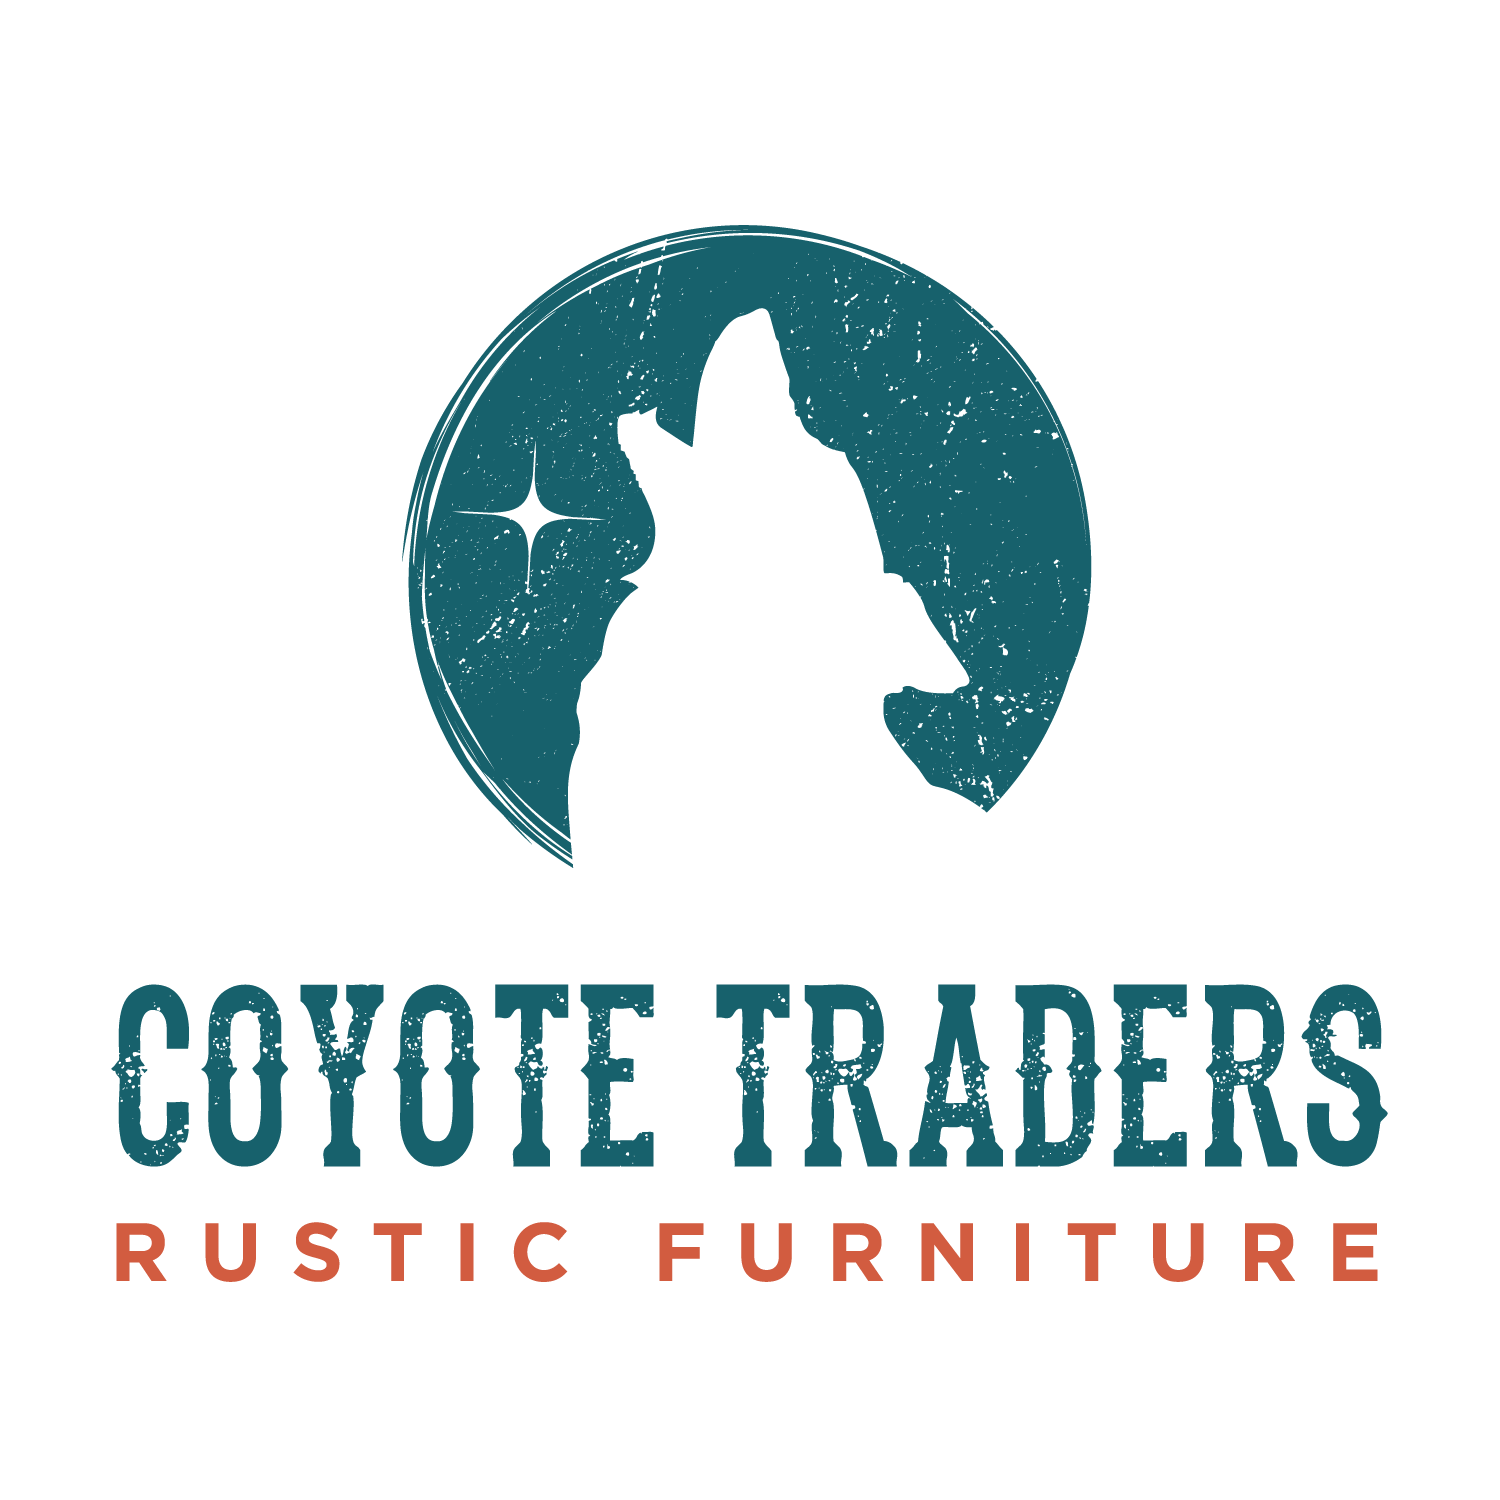 Coyote Traders